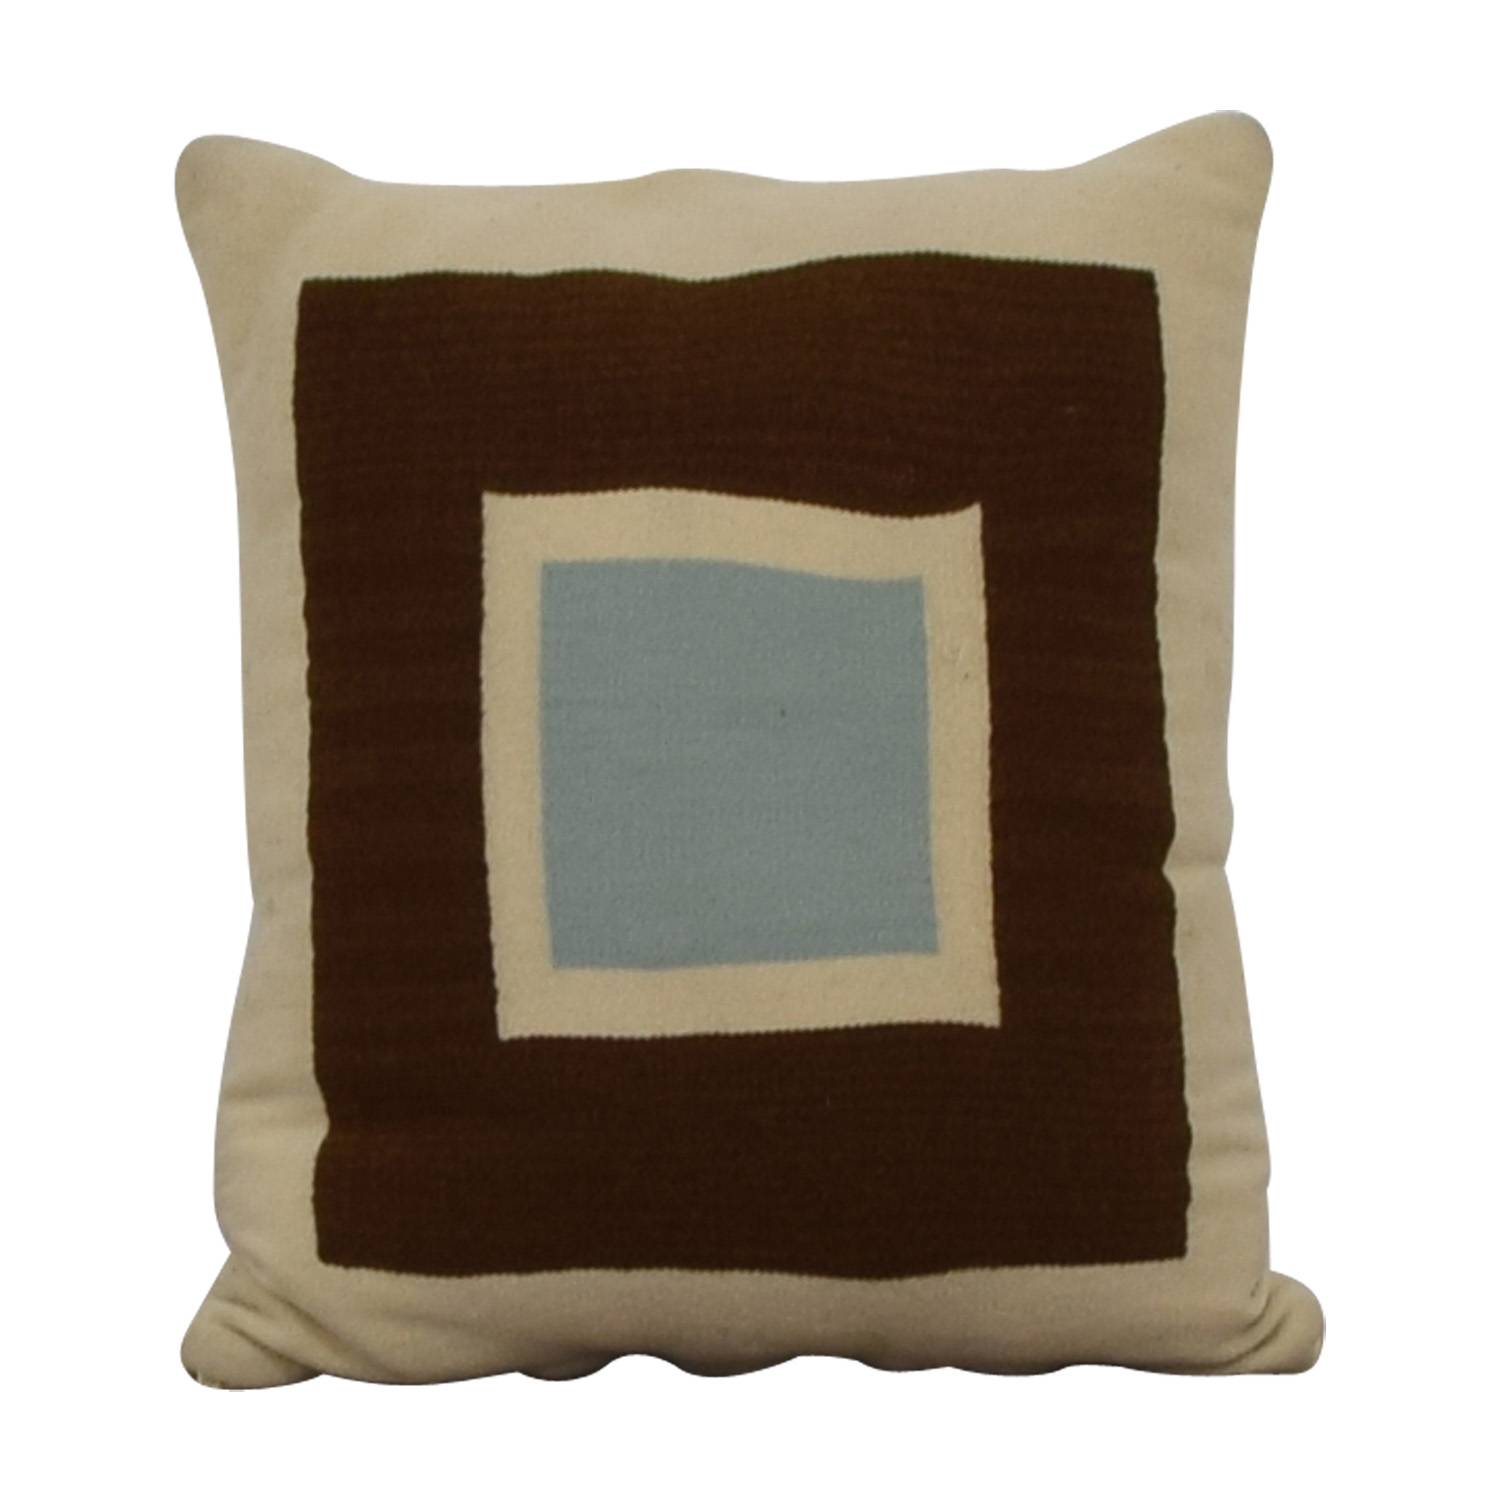 Jonathan Adler Jonathan Adler Reversible Beige Brown and Blue Pillow nyc